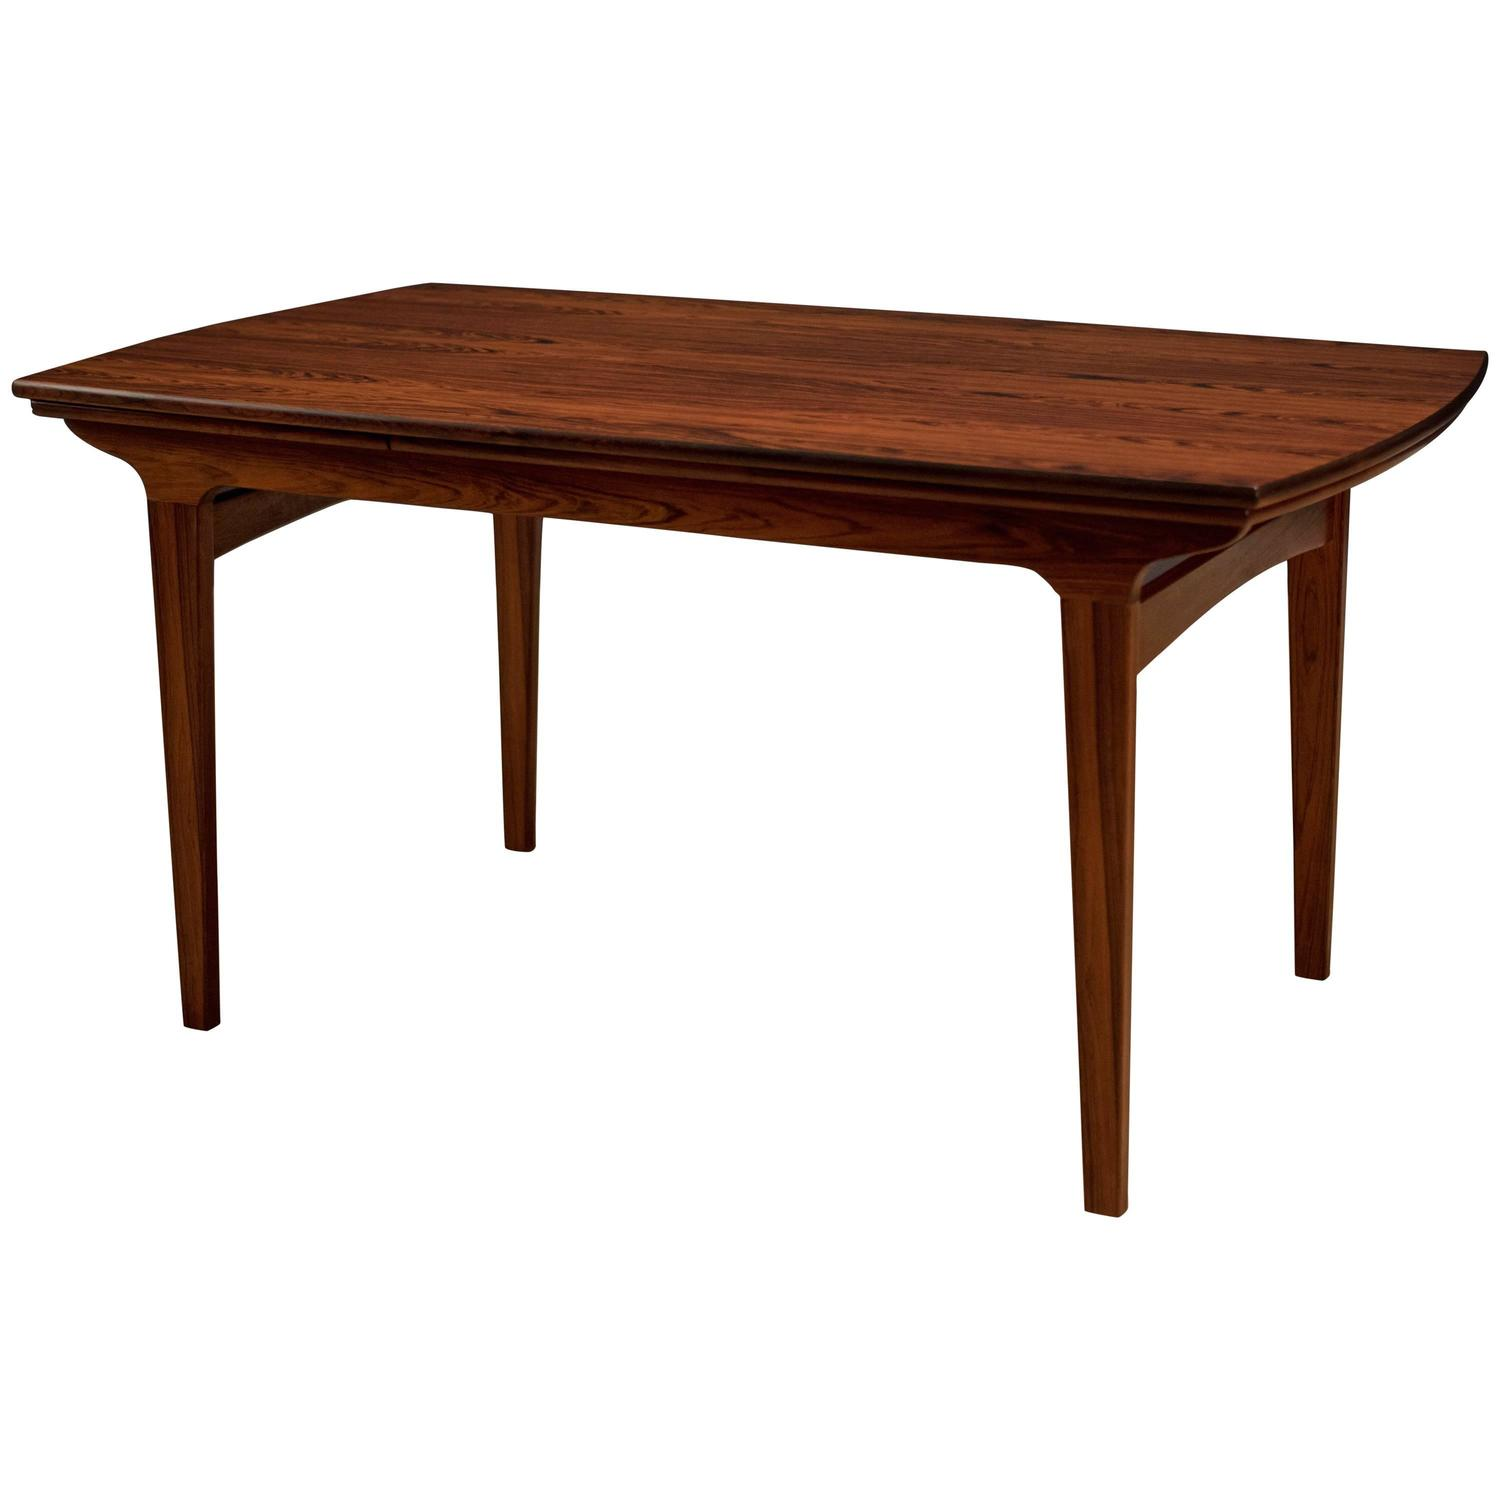 Danish brazilian rosewood expandable dining table at 1stdibs for Expandable dining table